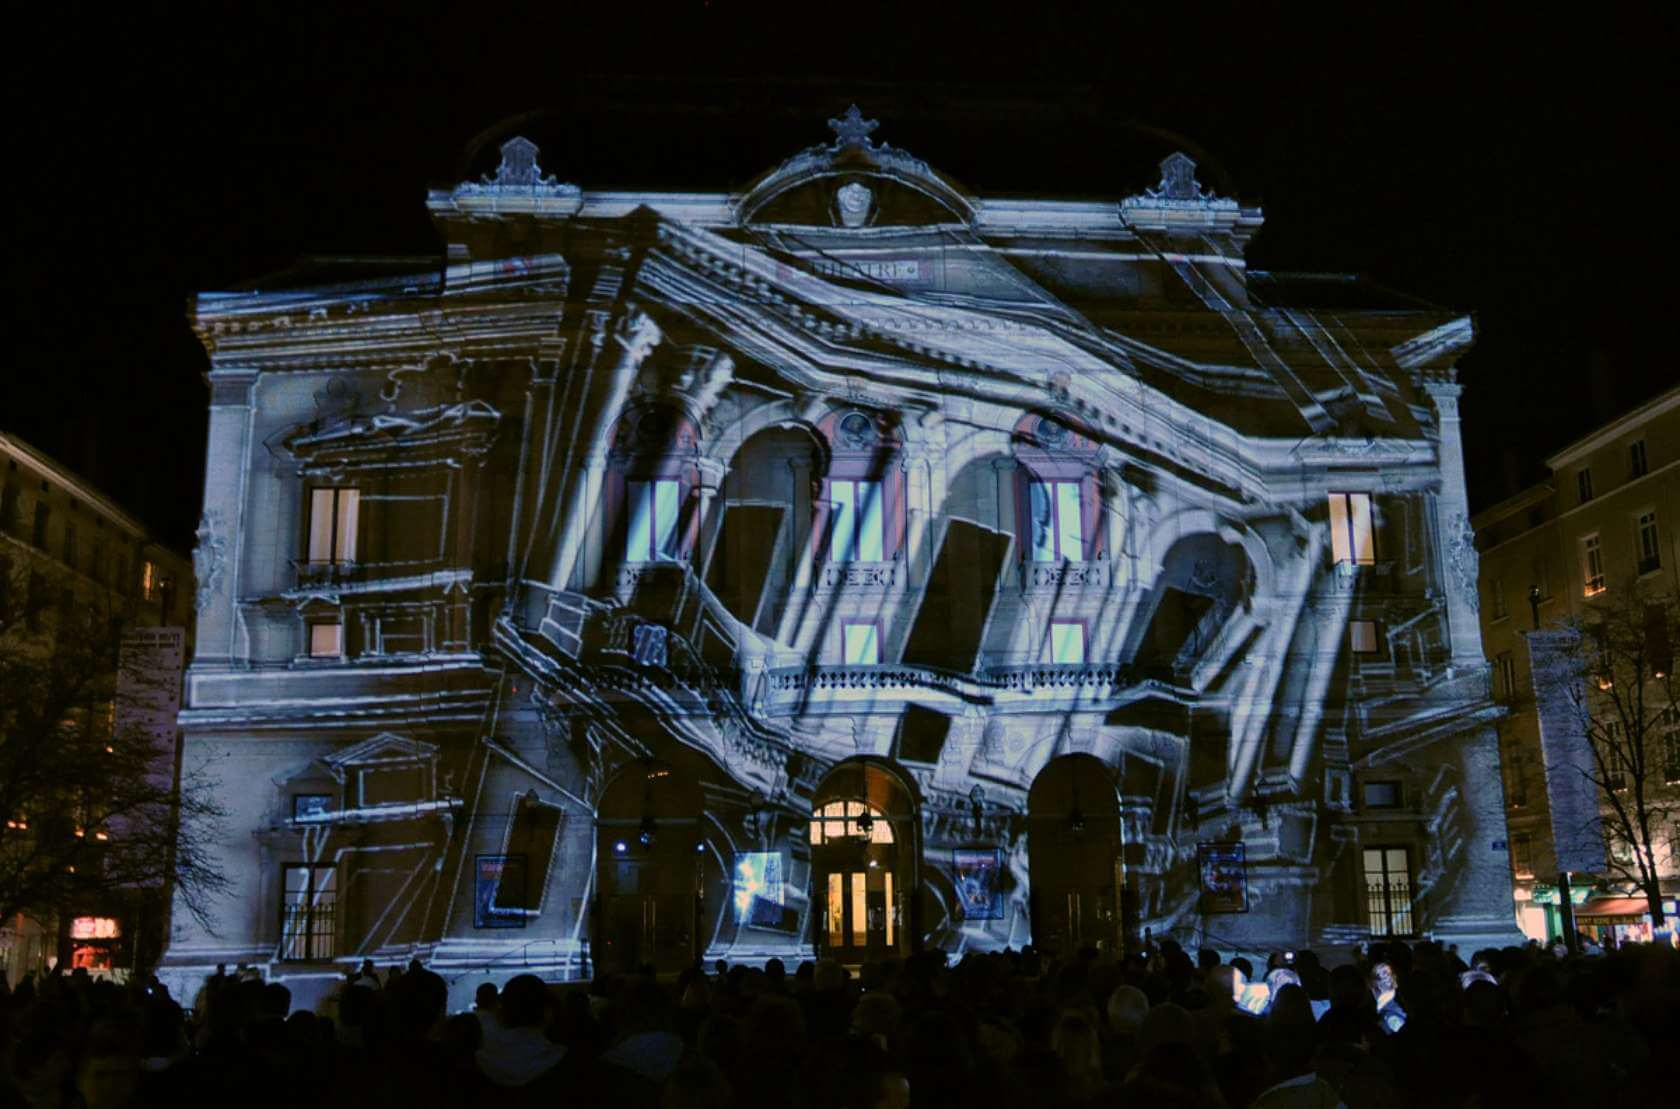 Advantages of projection mapping